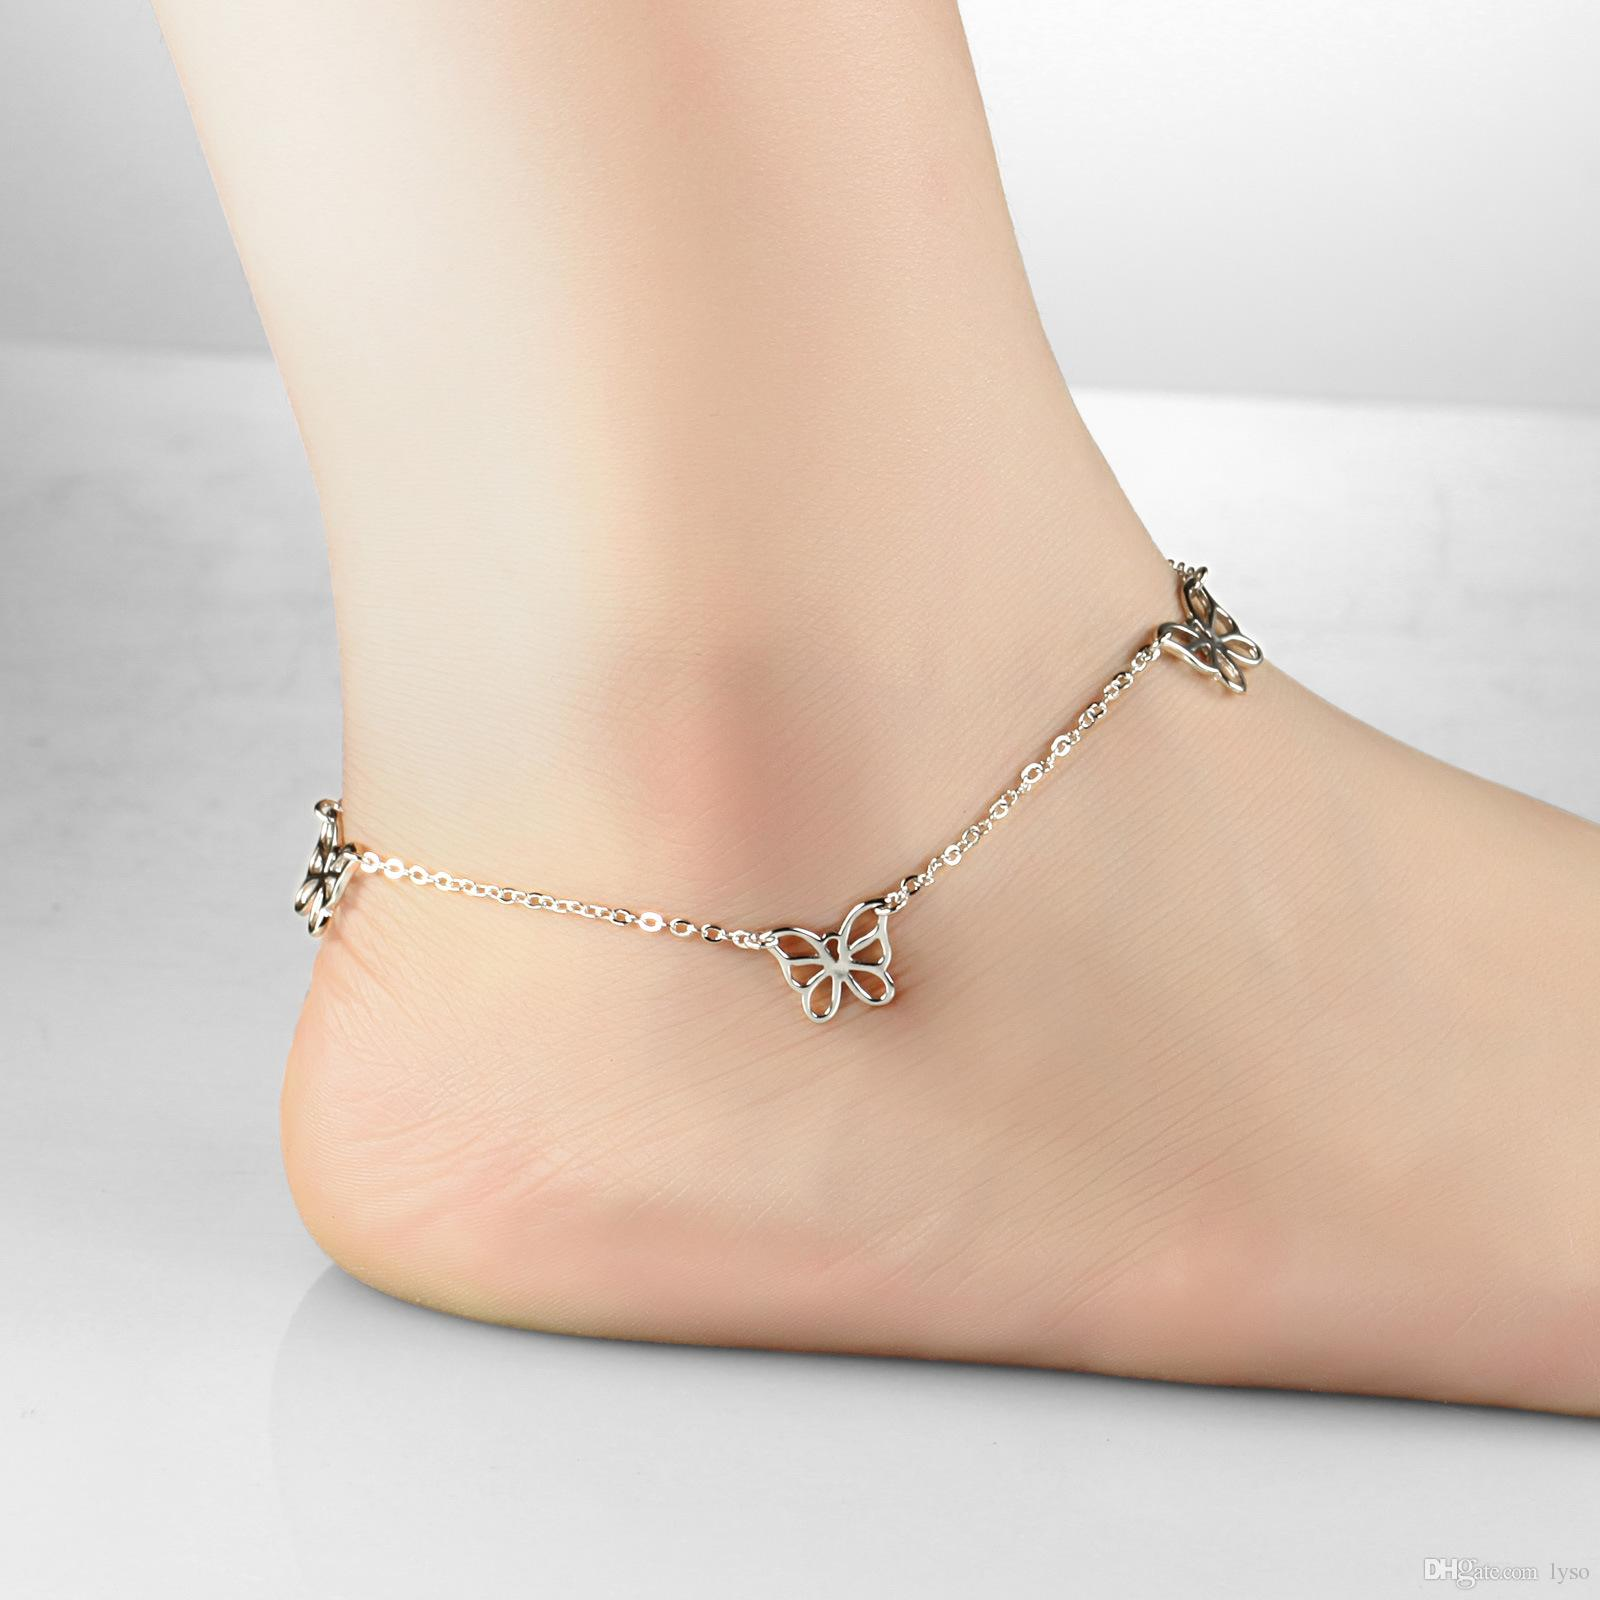 ankle tree silver top jewelry bracelet inch beach palm seashore sterling boutique online anklet chain solid fine carats ice ovztrade index anklets